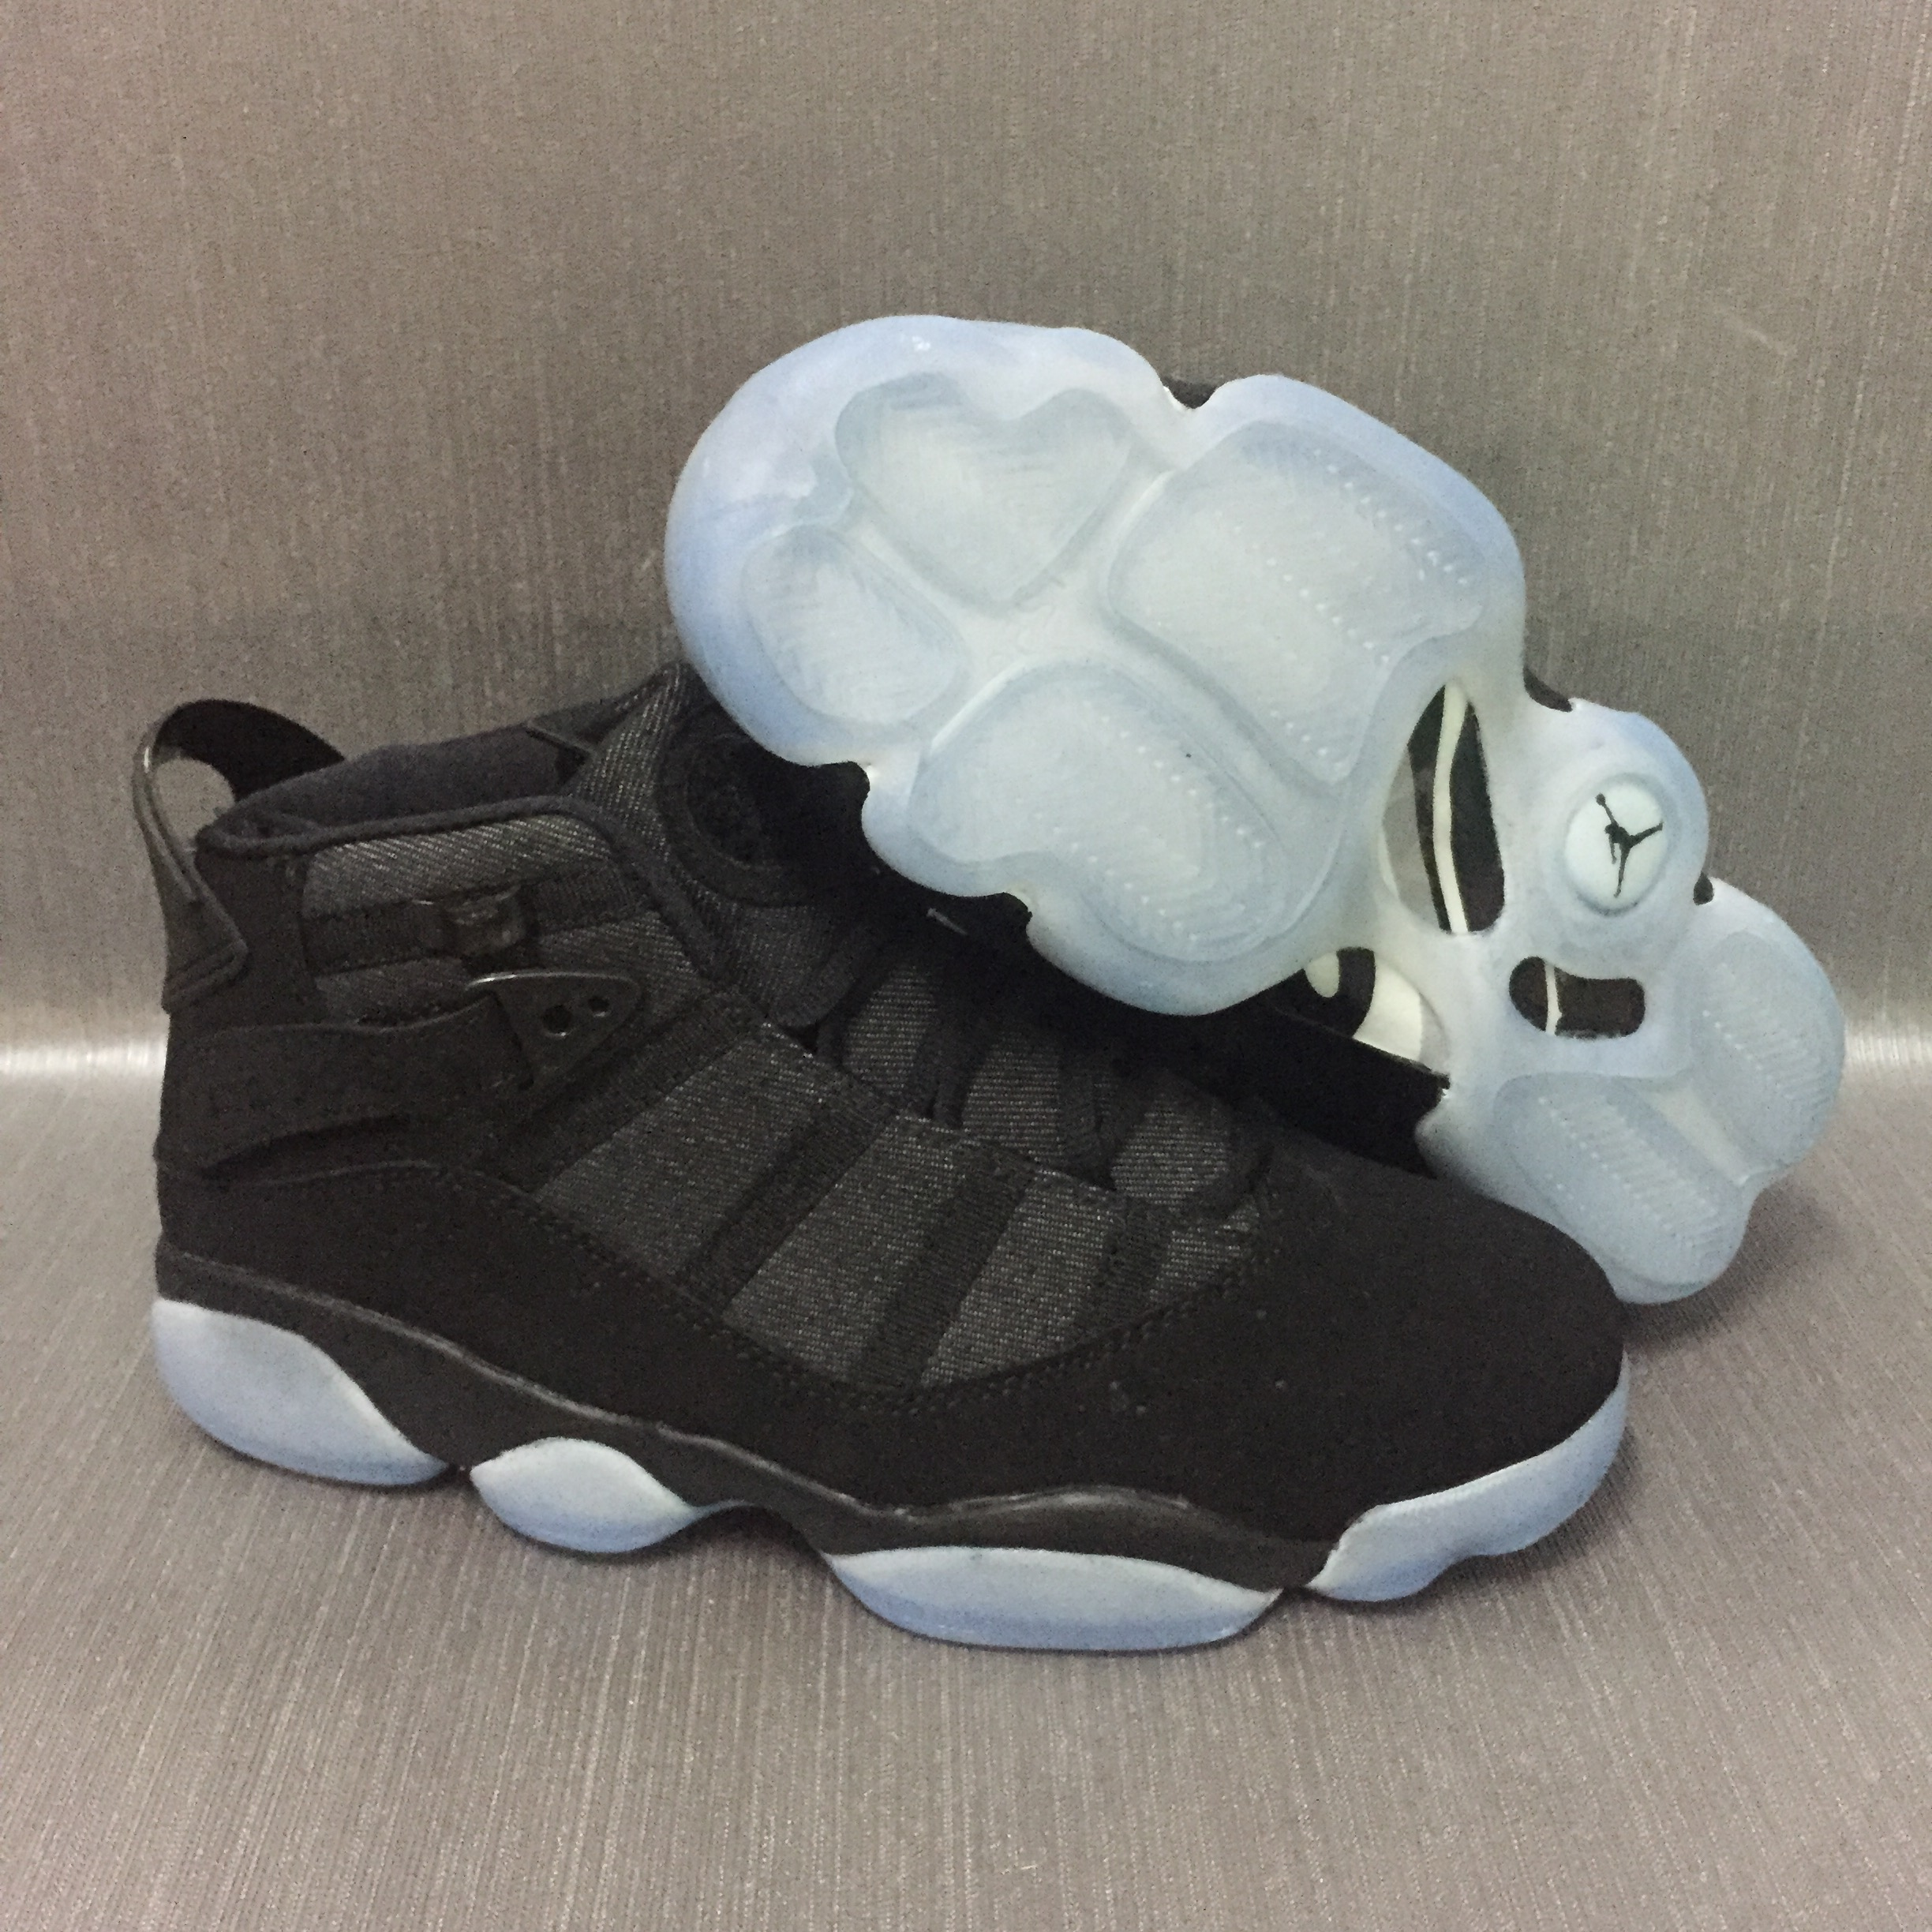 Jordans 6 Champion Black White Shoes